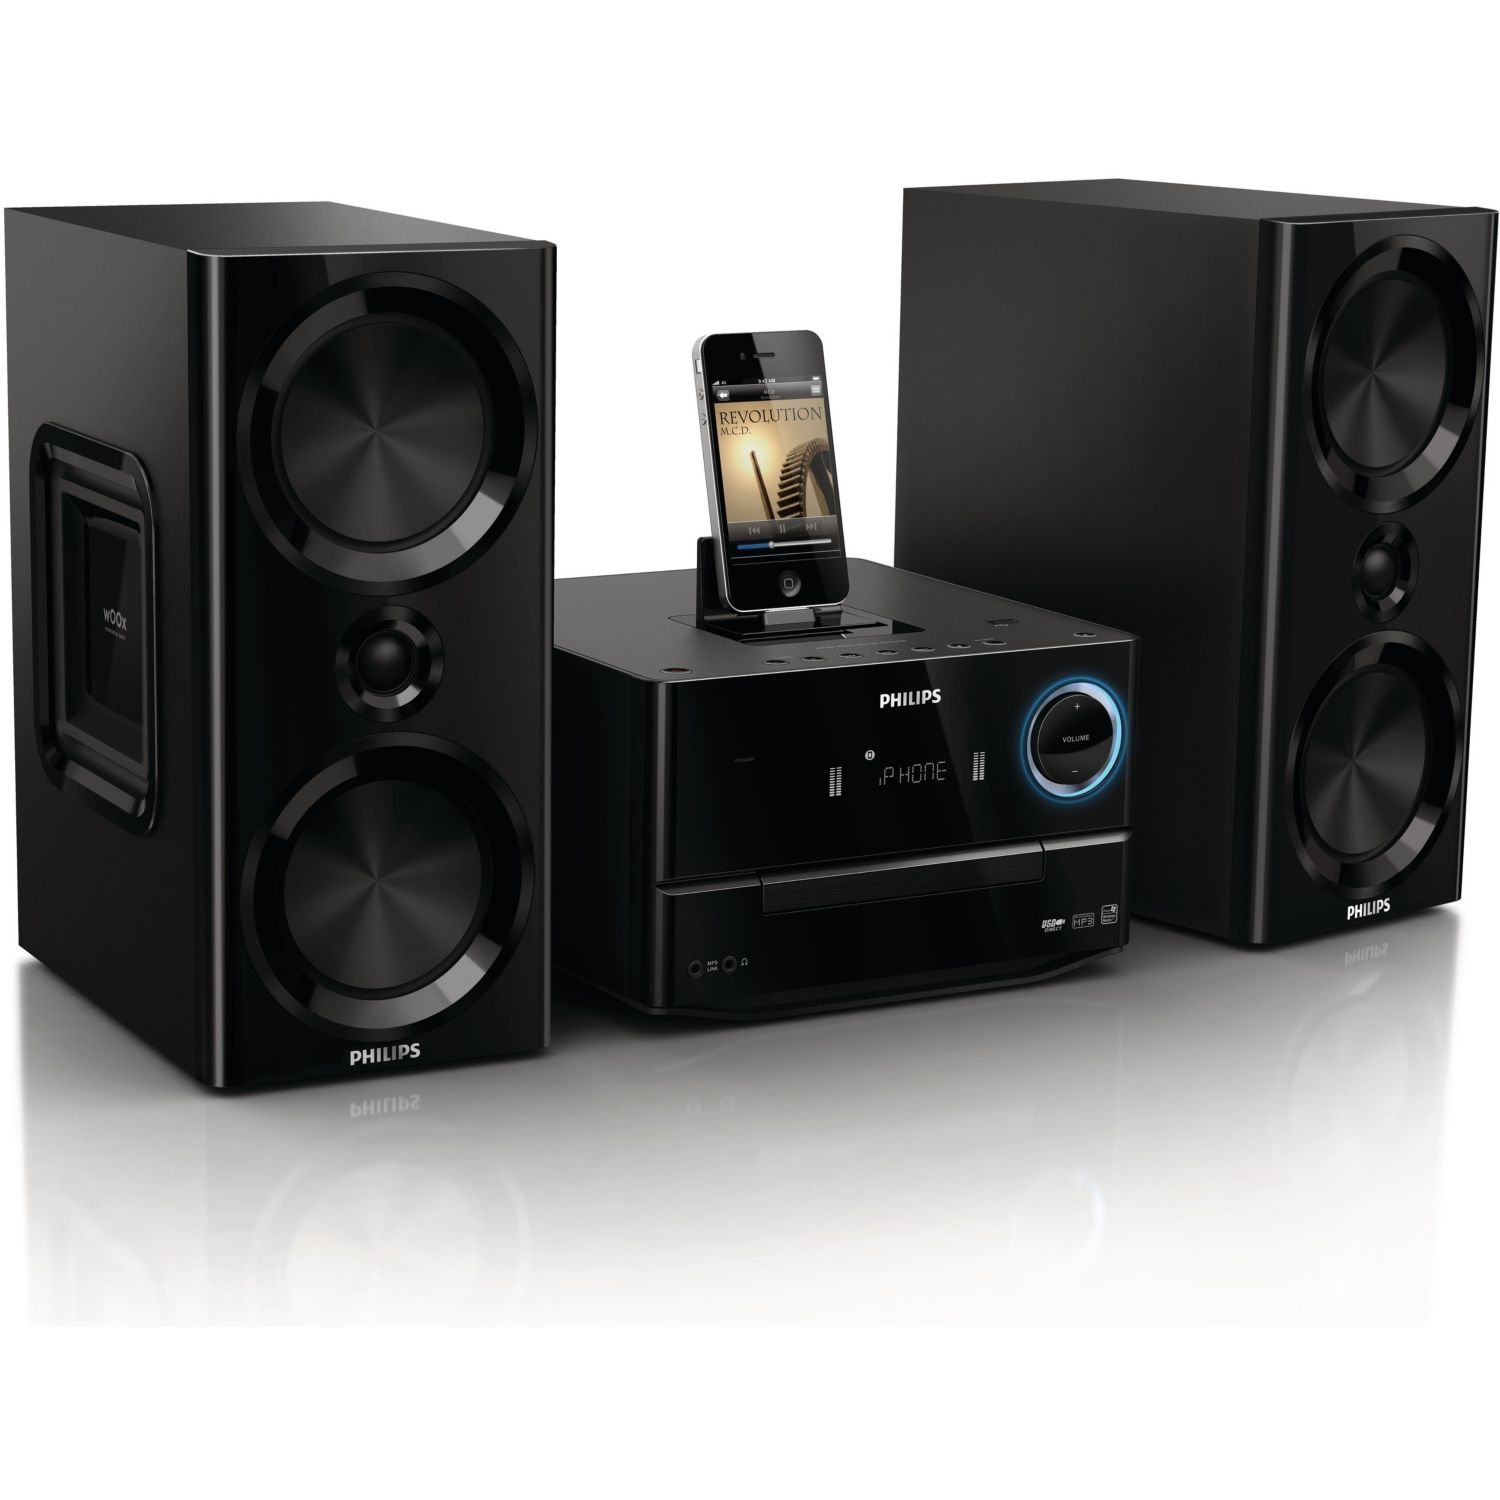 philips dcm3020 kompaktanlage test soundsystem. Black Bedroom Furniture Sets. Home Design Ideas